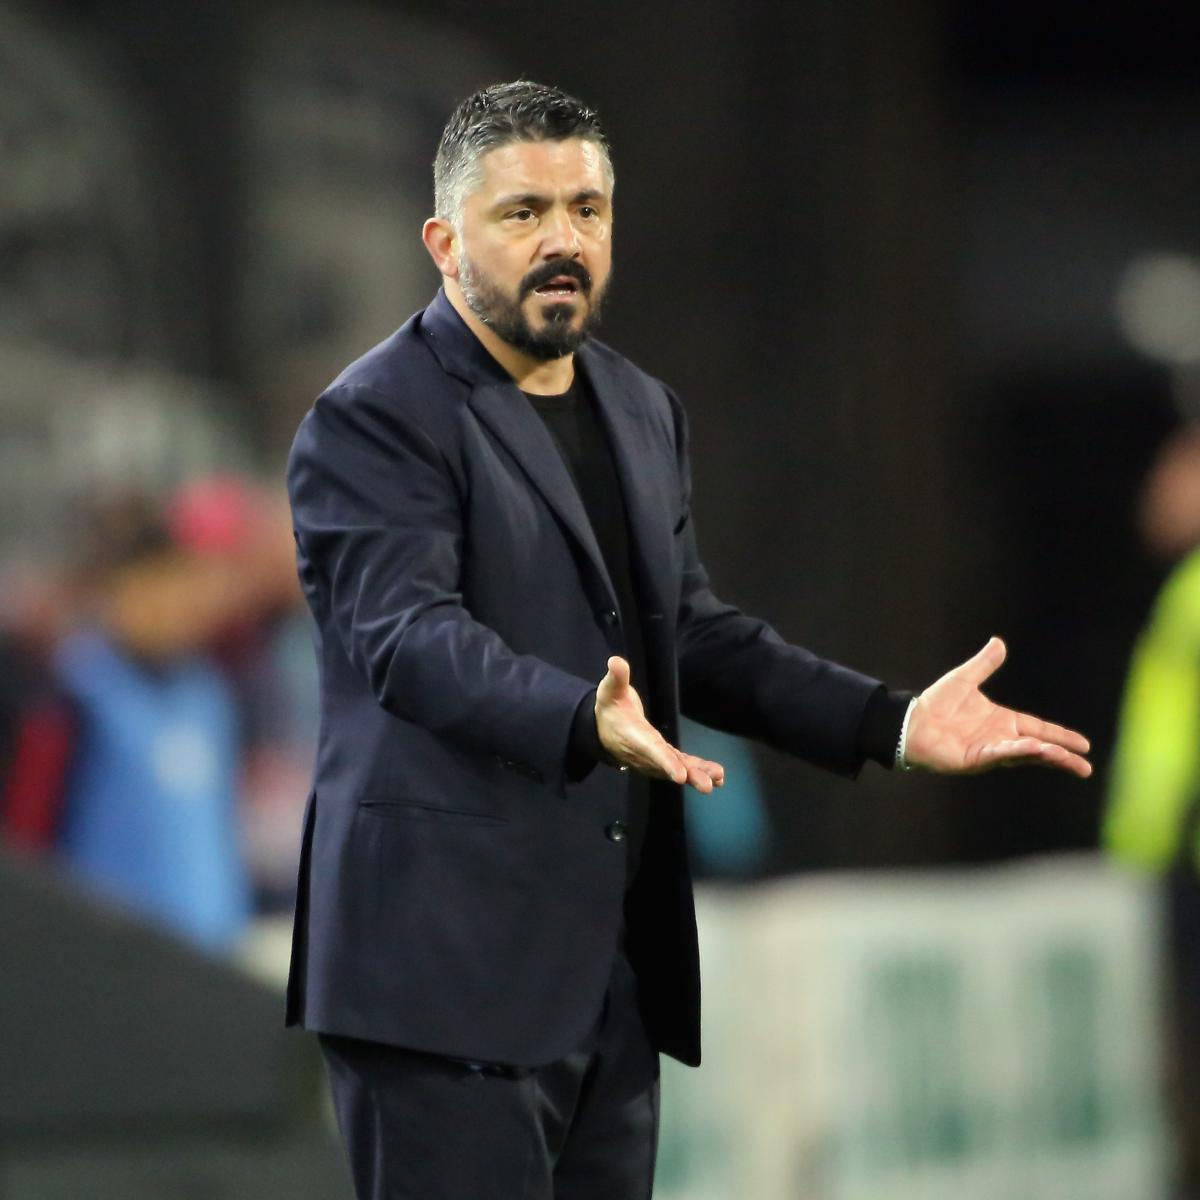 Napoli's Gattuso: 'You Can't Stop' Lionel Messi, Won't 'Man Mark' Barcelona Icon